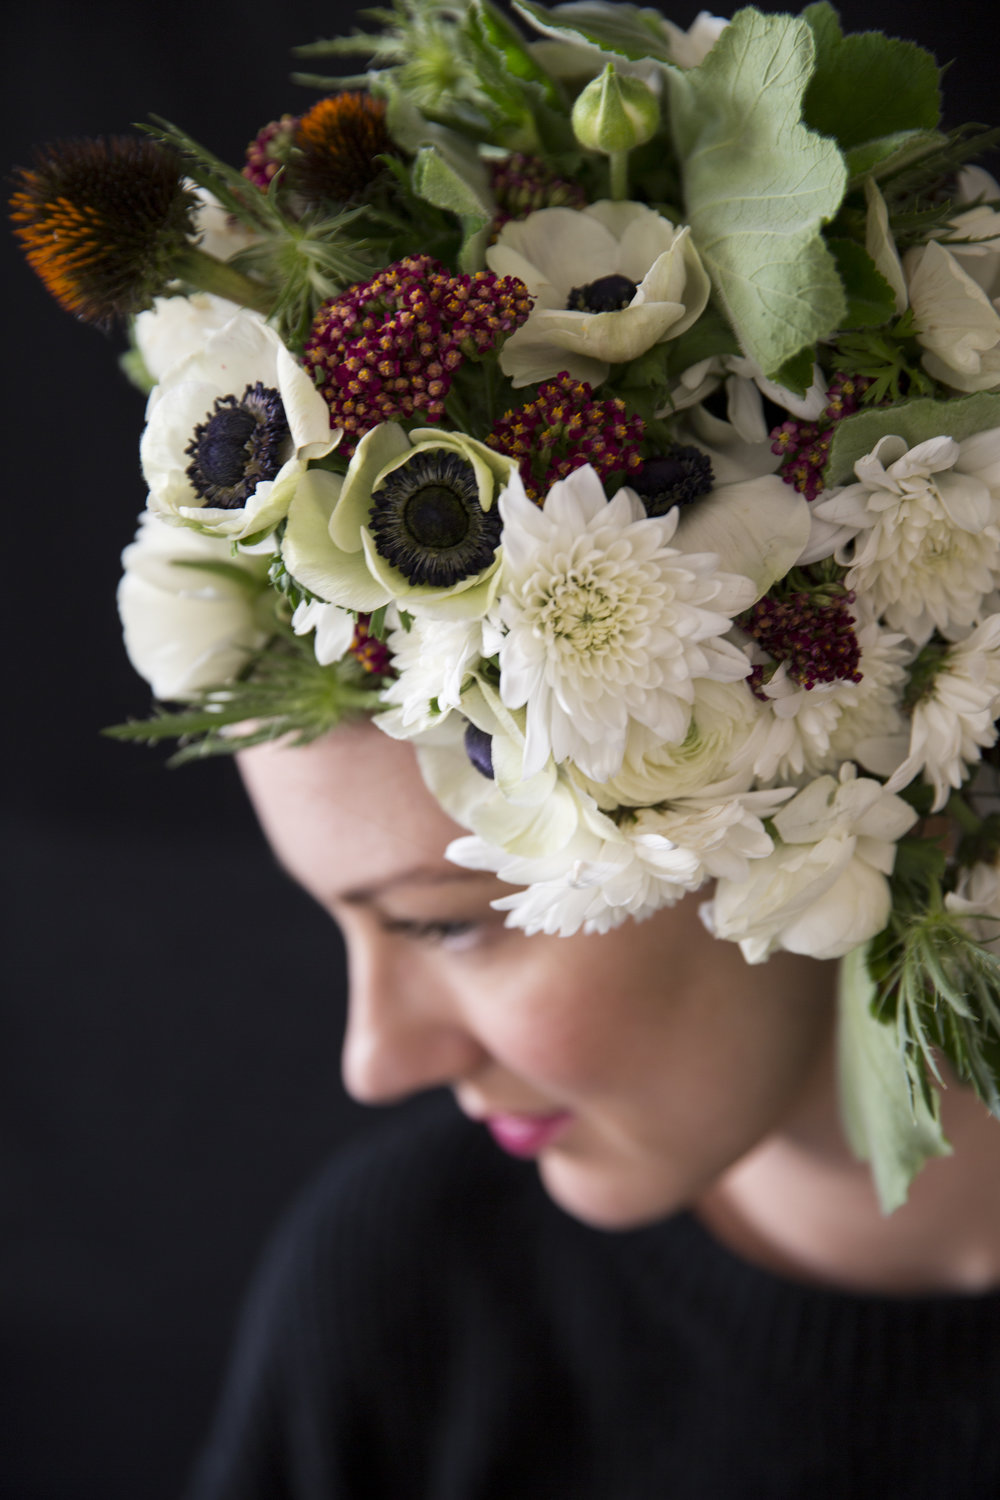 Wearable Floral Designs - Inspiration Shoot